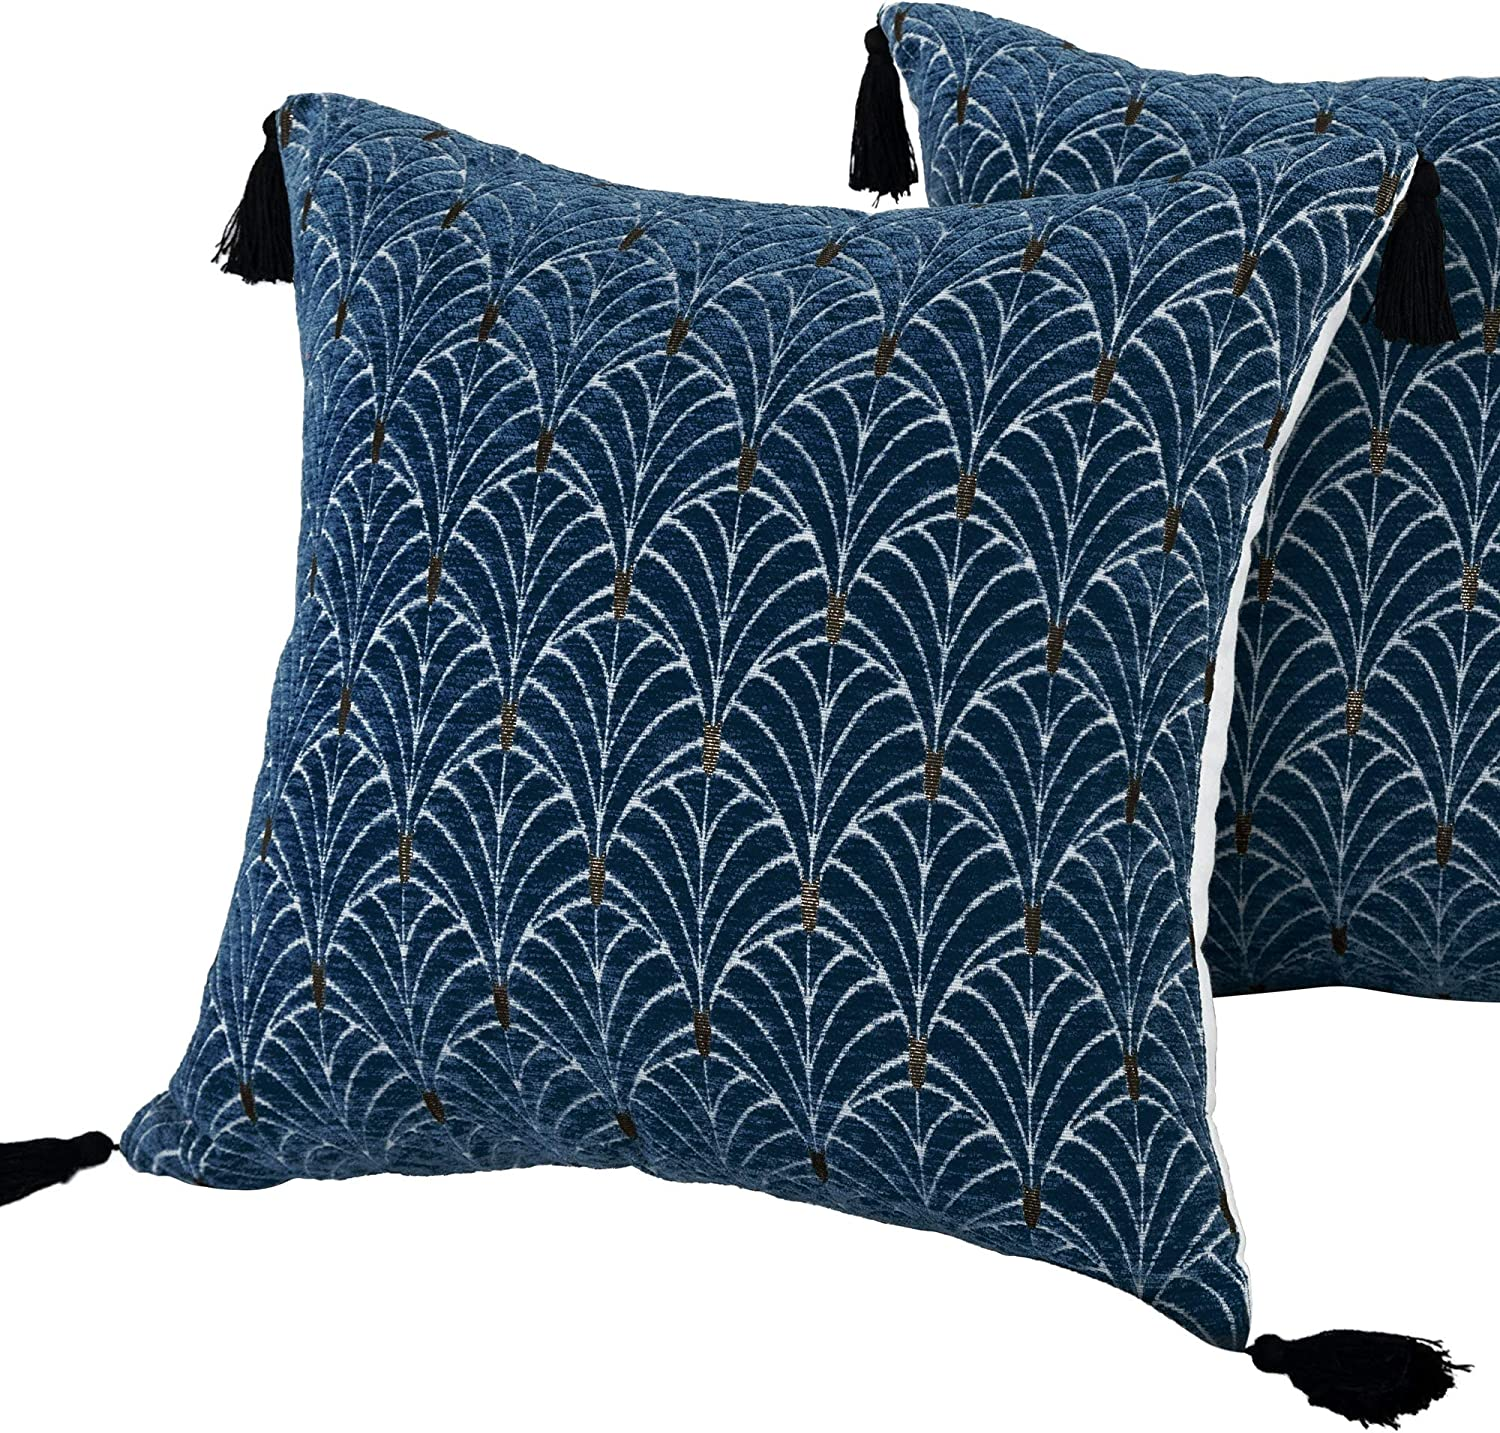 Blue Pillow Cases 18x18 for Living Room Set 2 Pack Cushion Japanese Decorative Floral Fan Pattern Graphic Cotton Chenille Tassel Geometric Throw Pillow Covers for Couch Christmas 18 Indigo Navy White